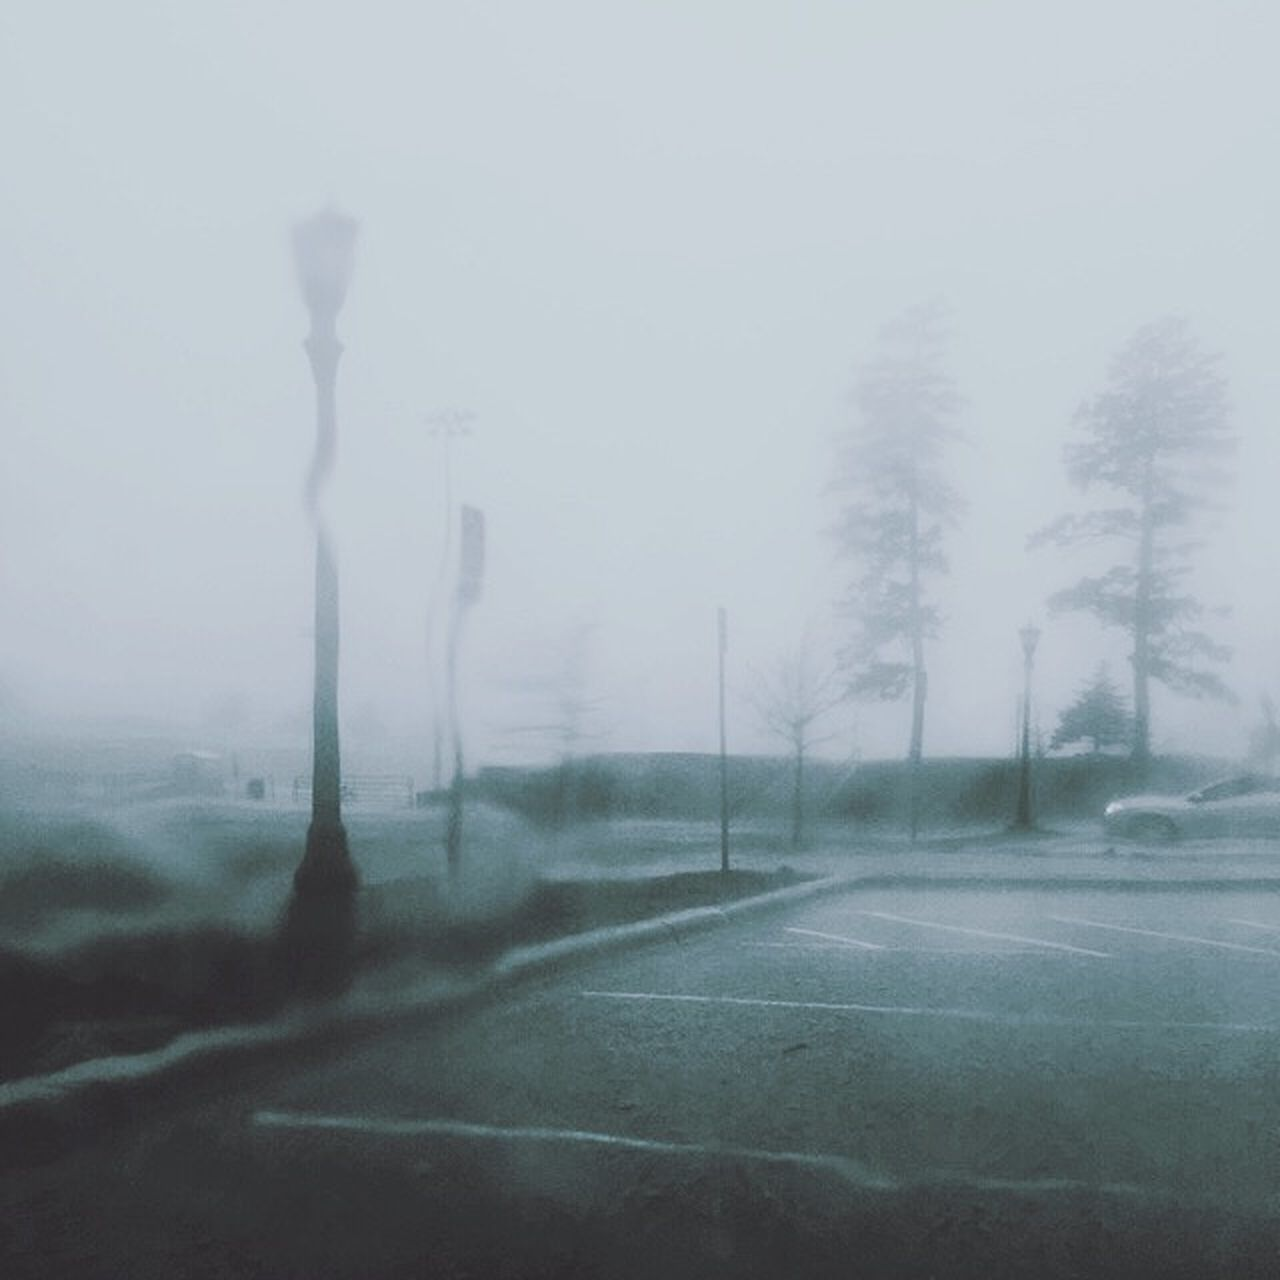 fog, road, tree, sky, no people, transportation, street, nature, environment, day, plant, cold temperature, beauty in nature, tranquility, winter, outdoors, land, landscape, tranquil scene, hazy, snowing